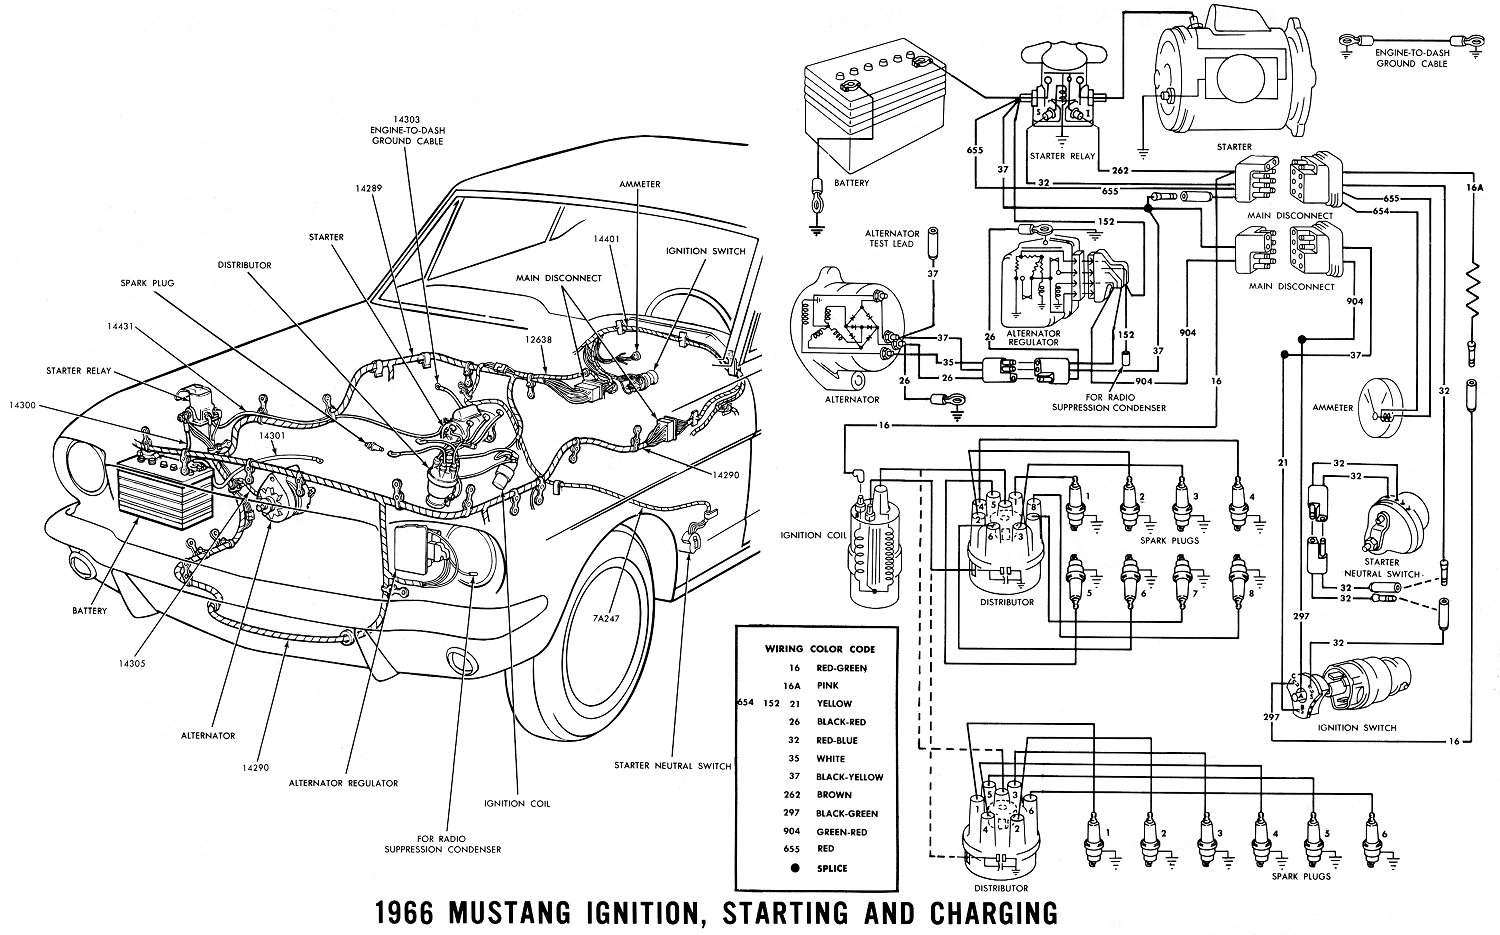 66ignit 1966 mustang wiring diagrams average joe restoration 1968 ford mustang wiring diagram at n-0.co